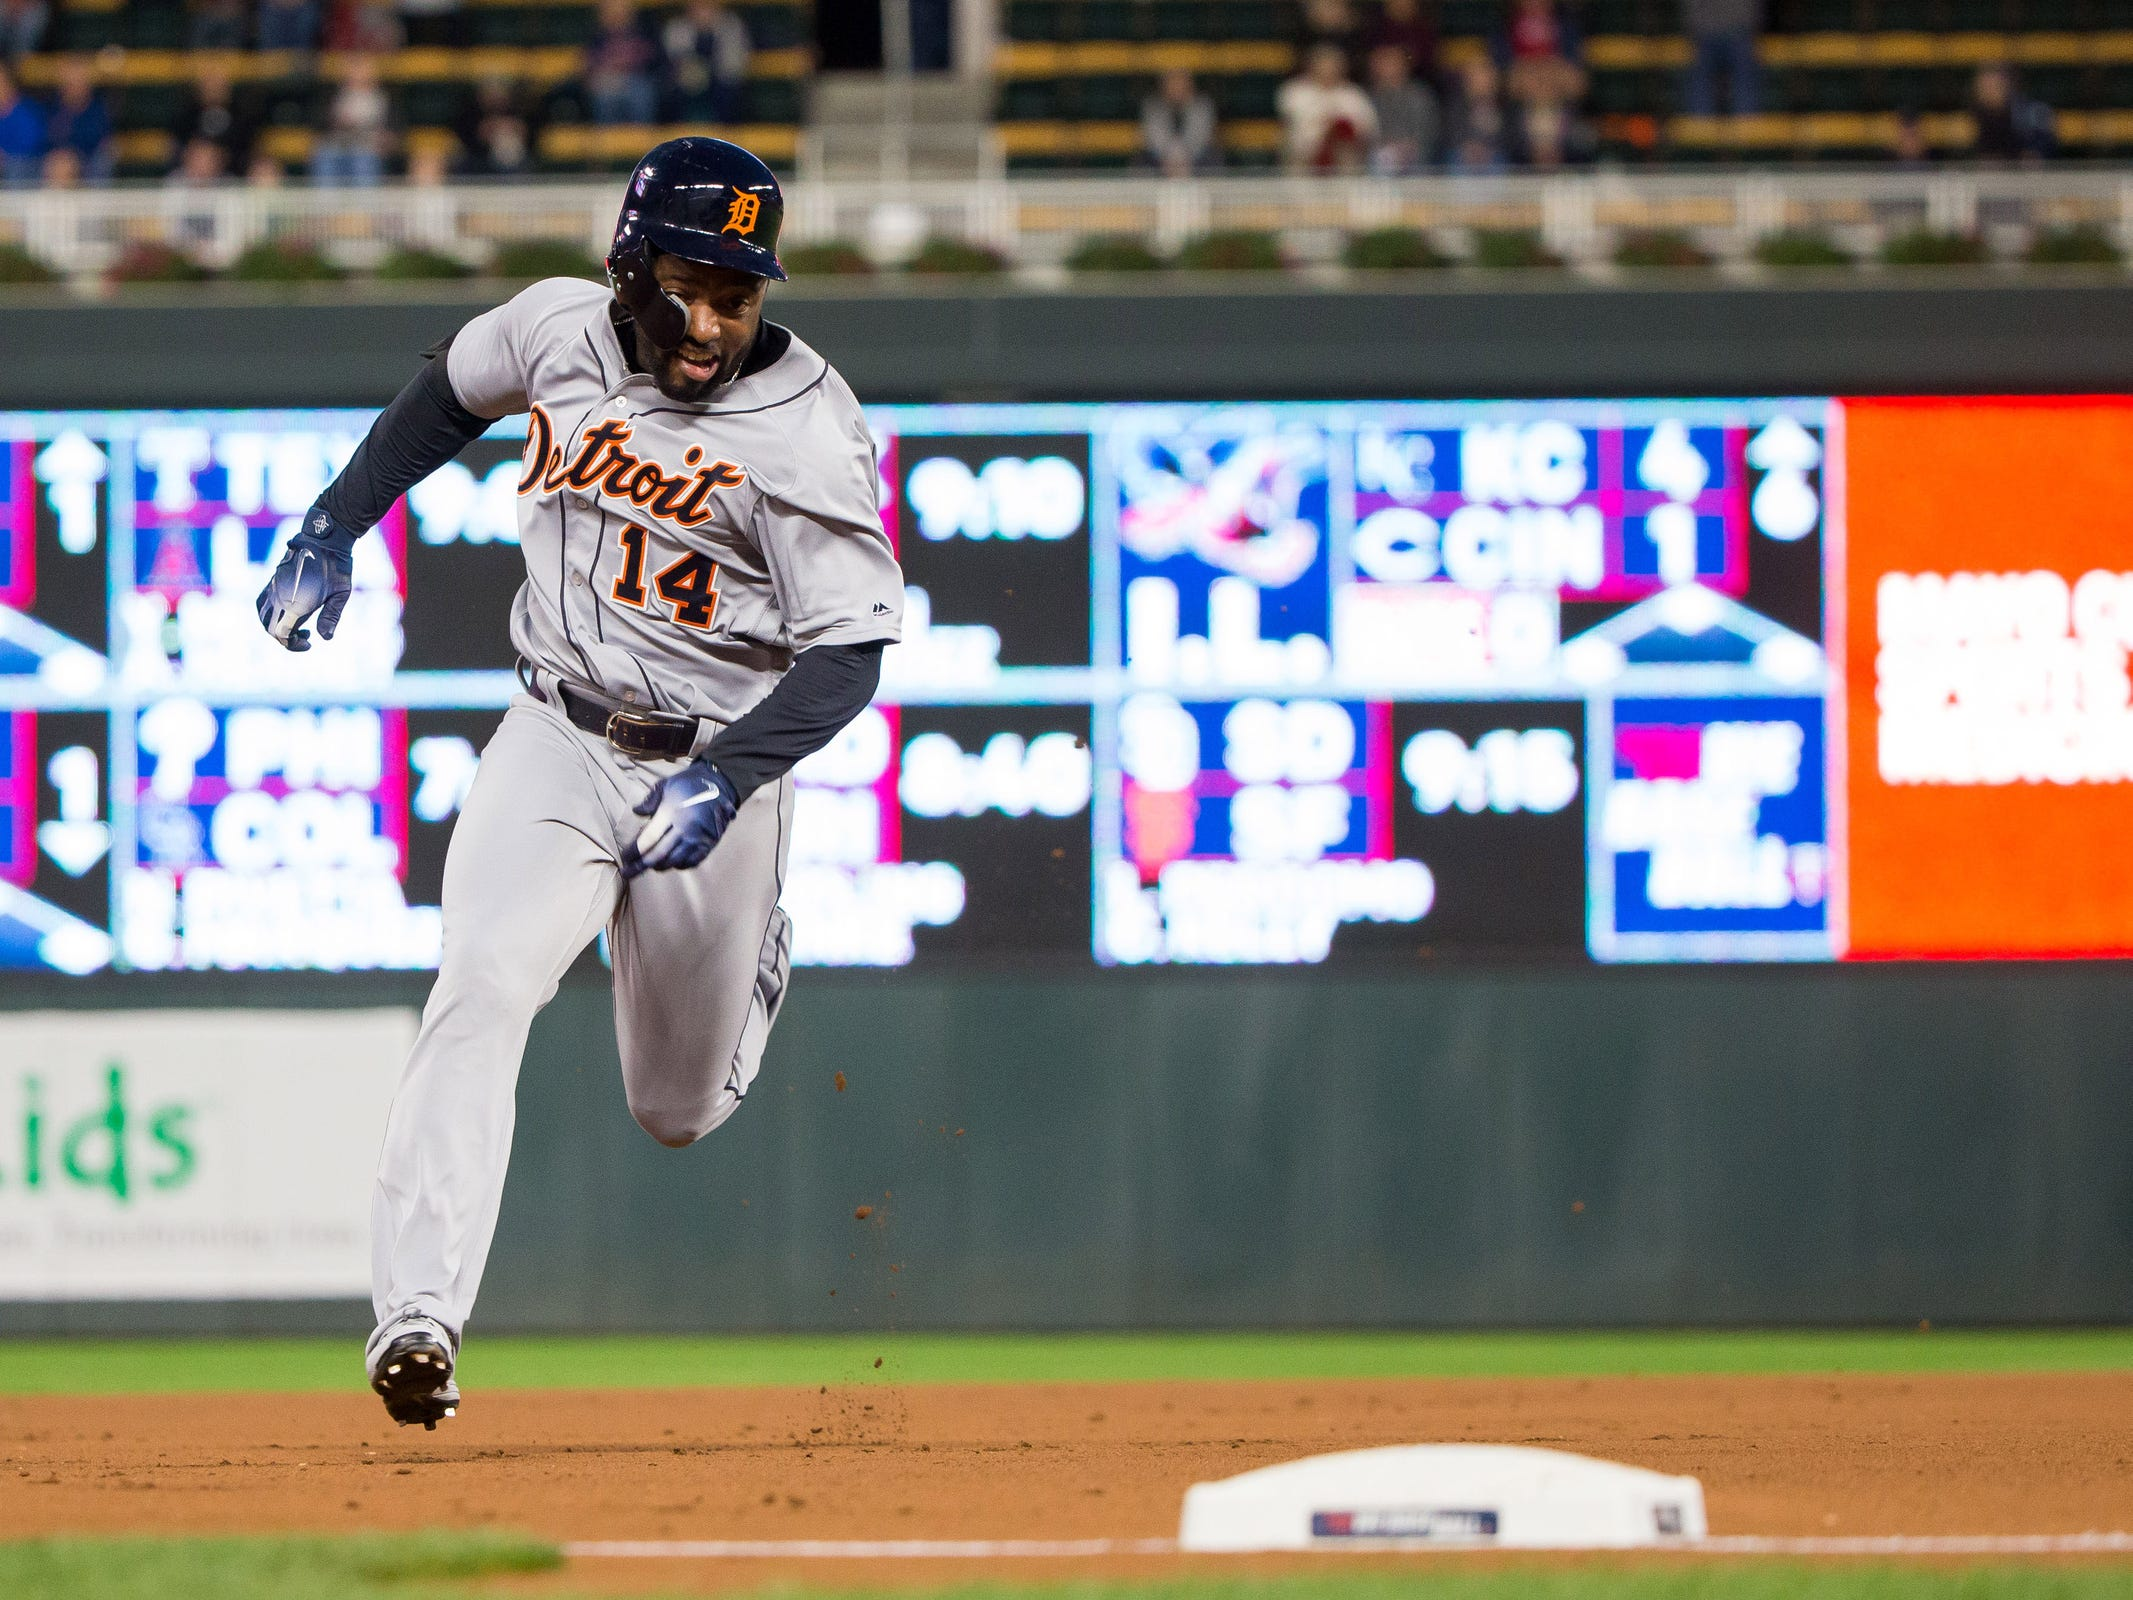 Detroit Tigers outfielder Christin Stewart (14) attempts an inside the park home run in the first inning against the Minnesota Twins at Target Field on Sept. 26, 2018.